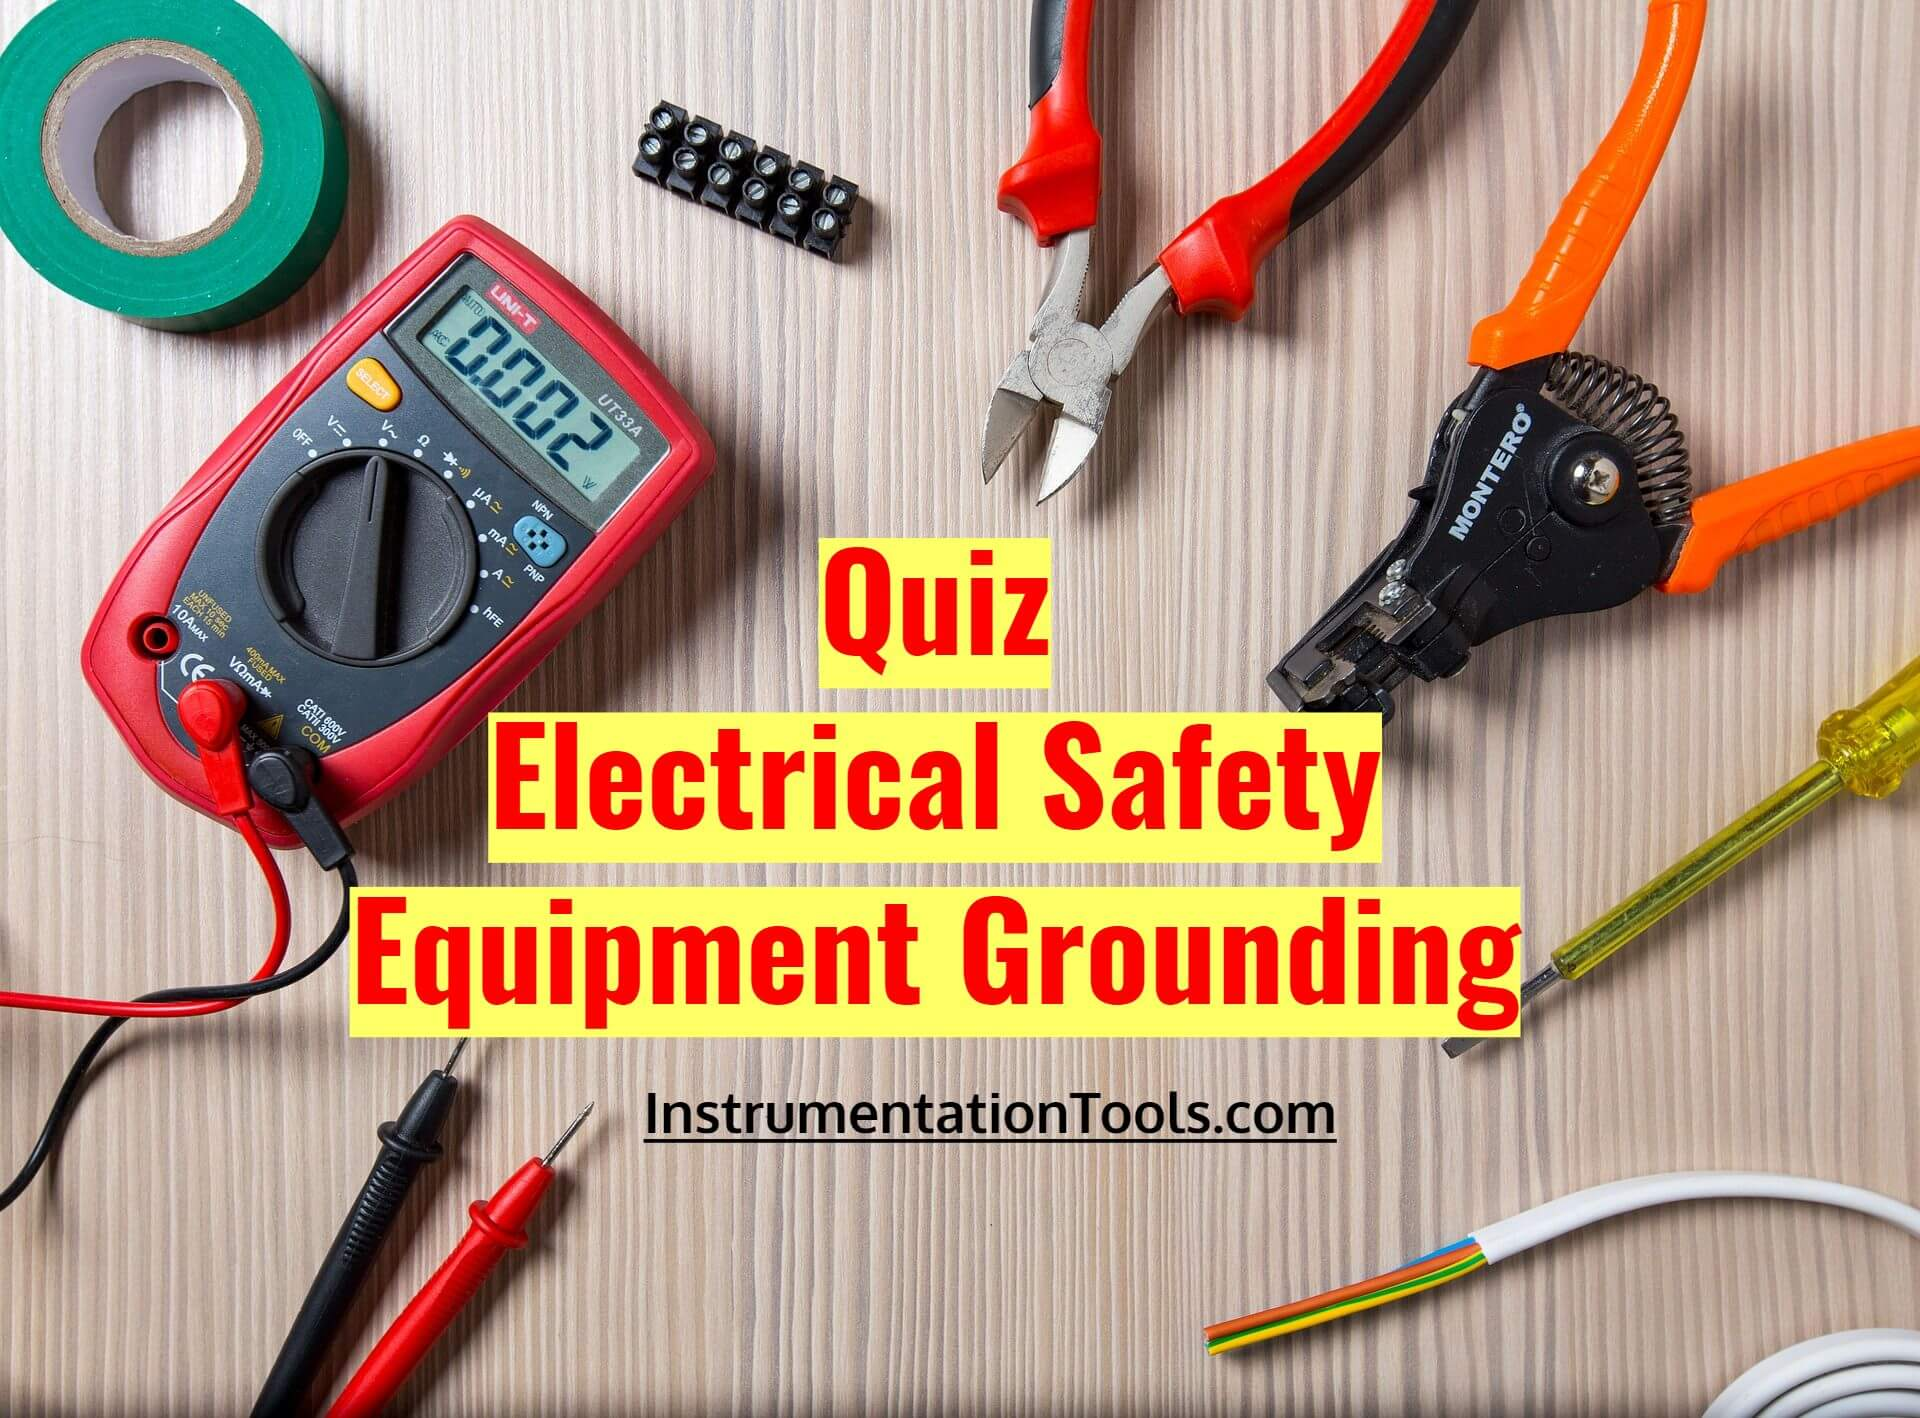 Quiz on Electrical Safety and Equipment Grounding